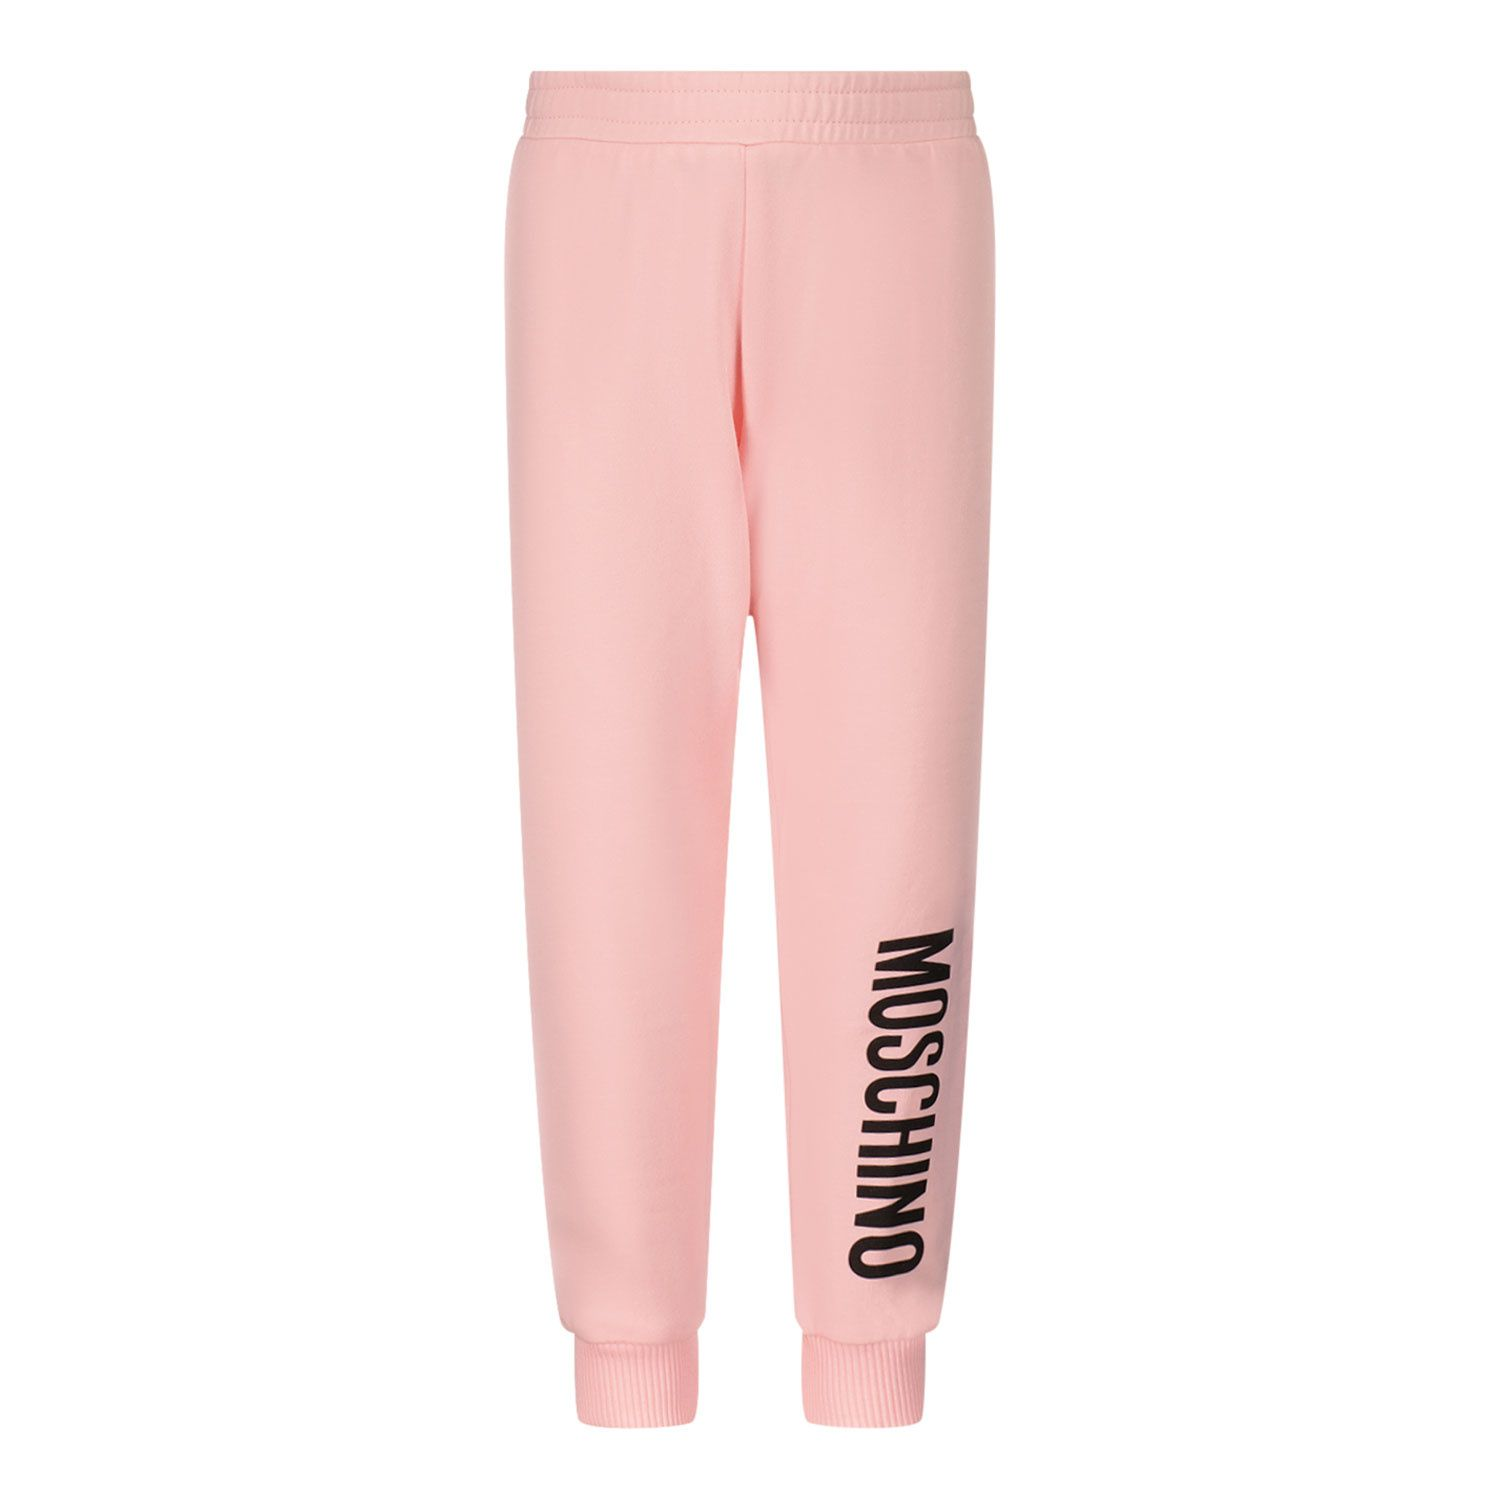 Picture of Moschino MNP035 baby pants light pink